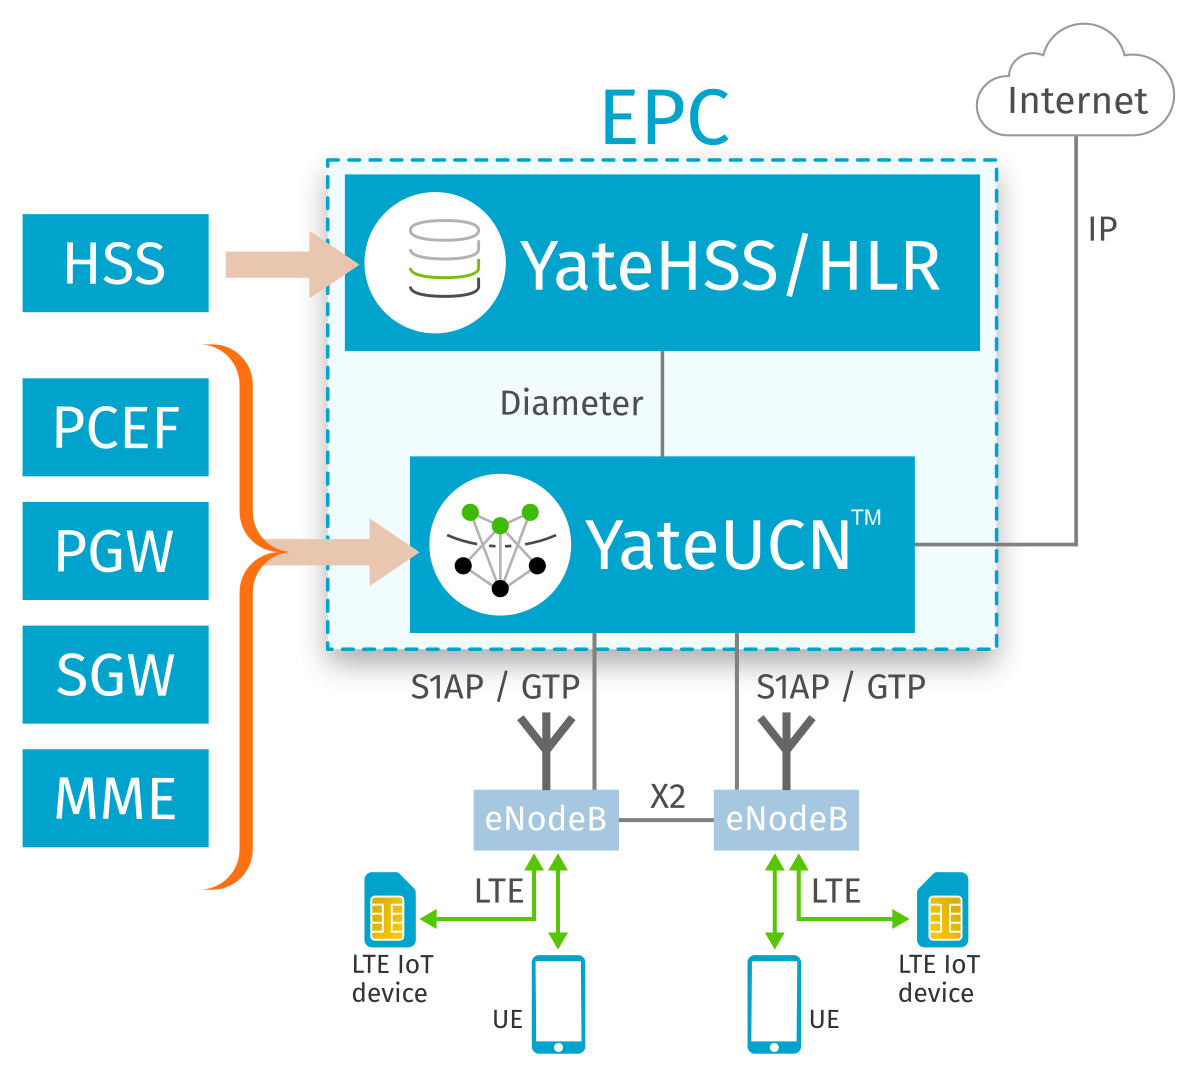 LTE EPC Diagram